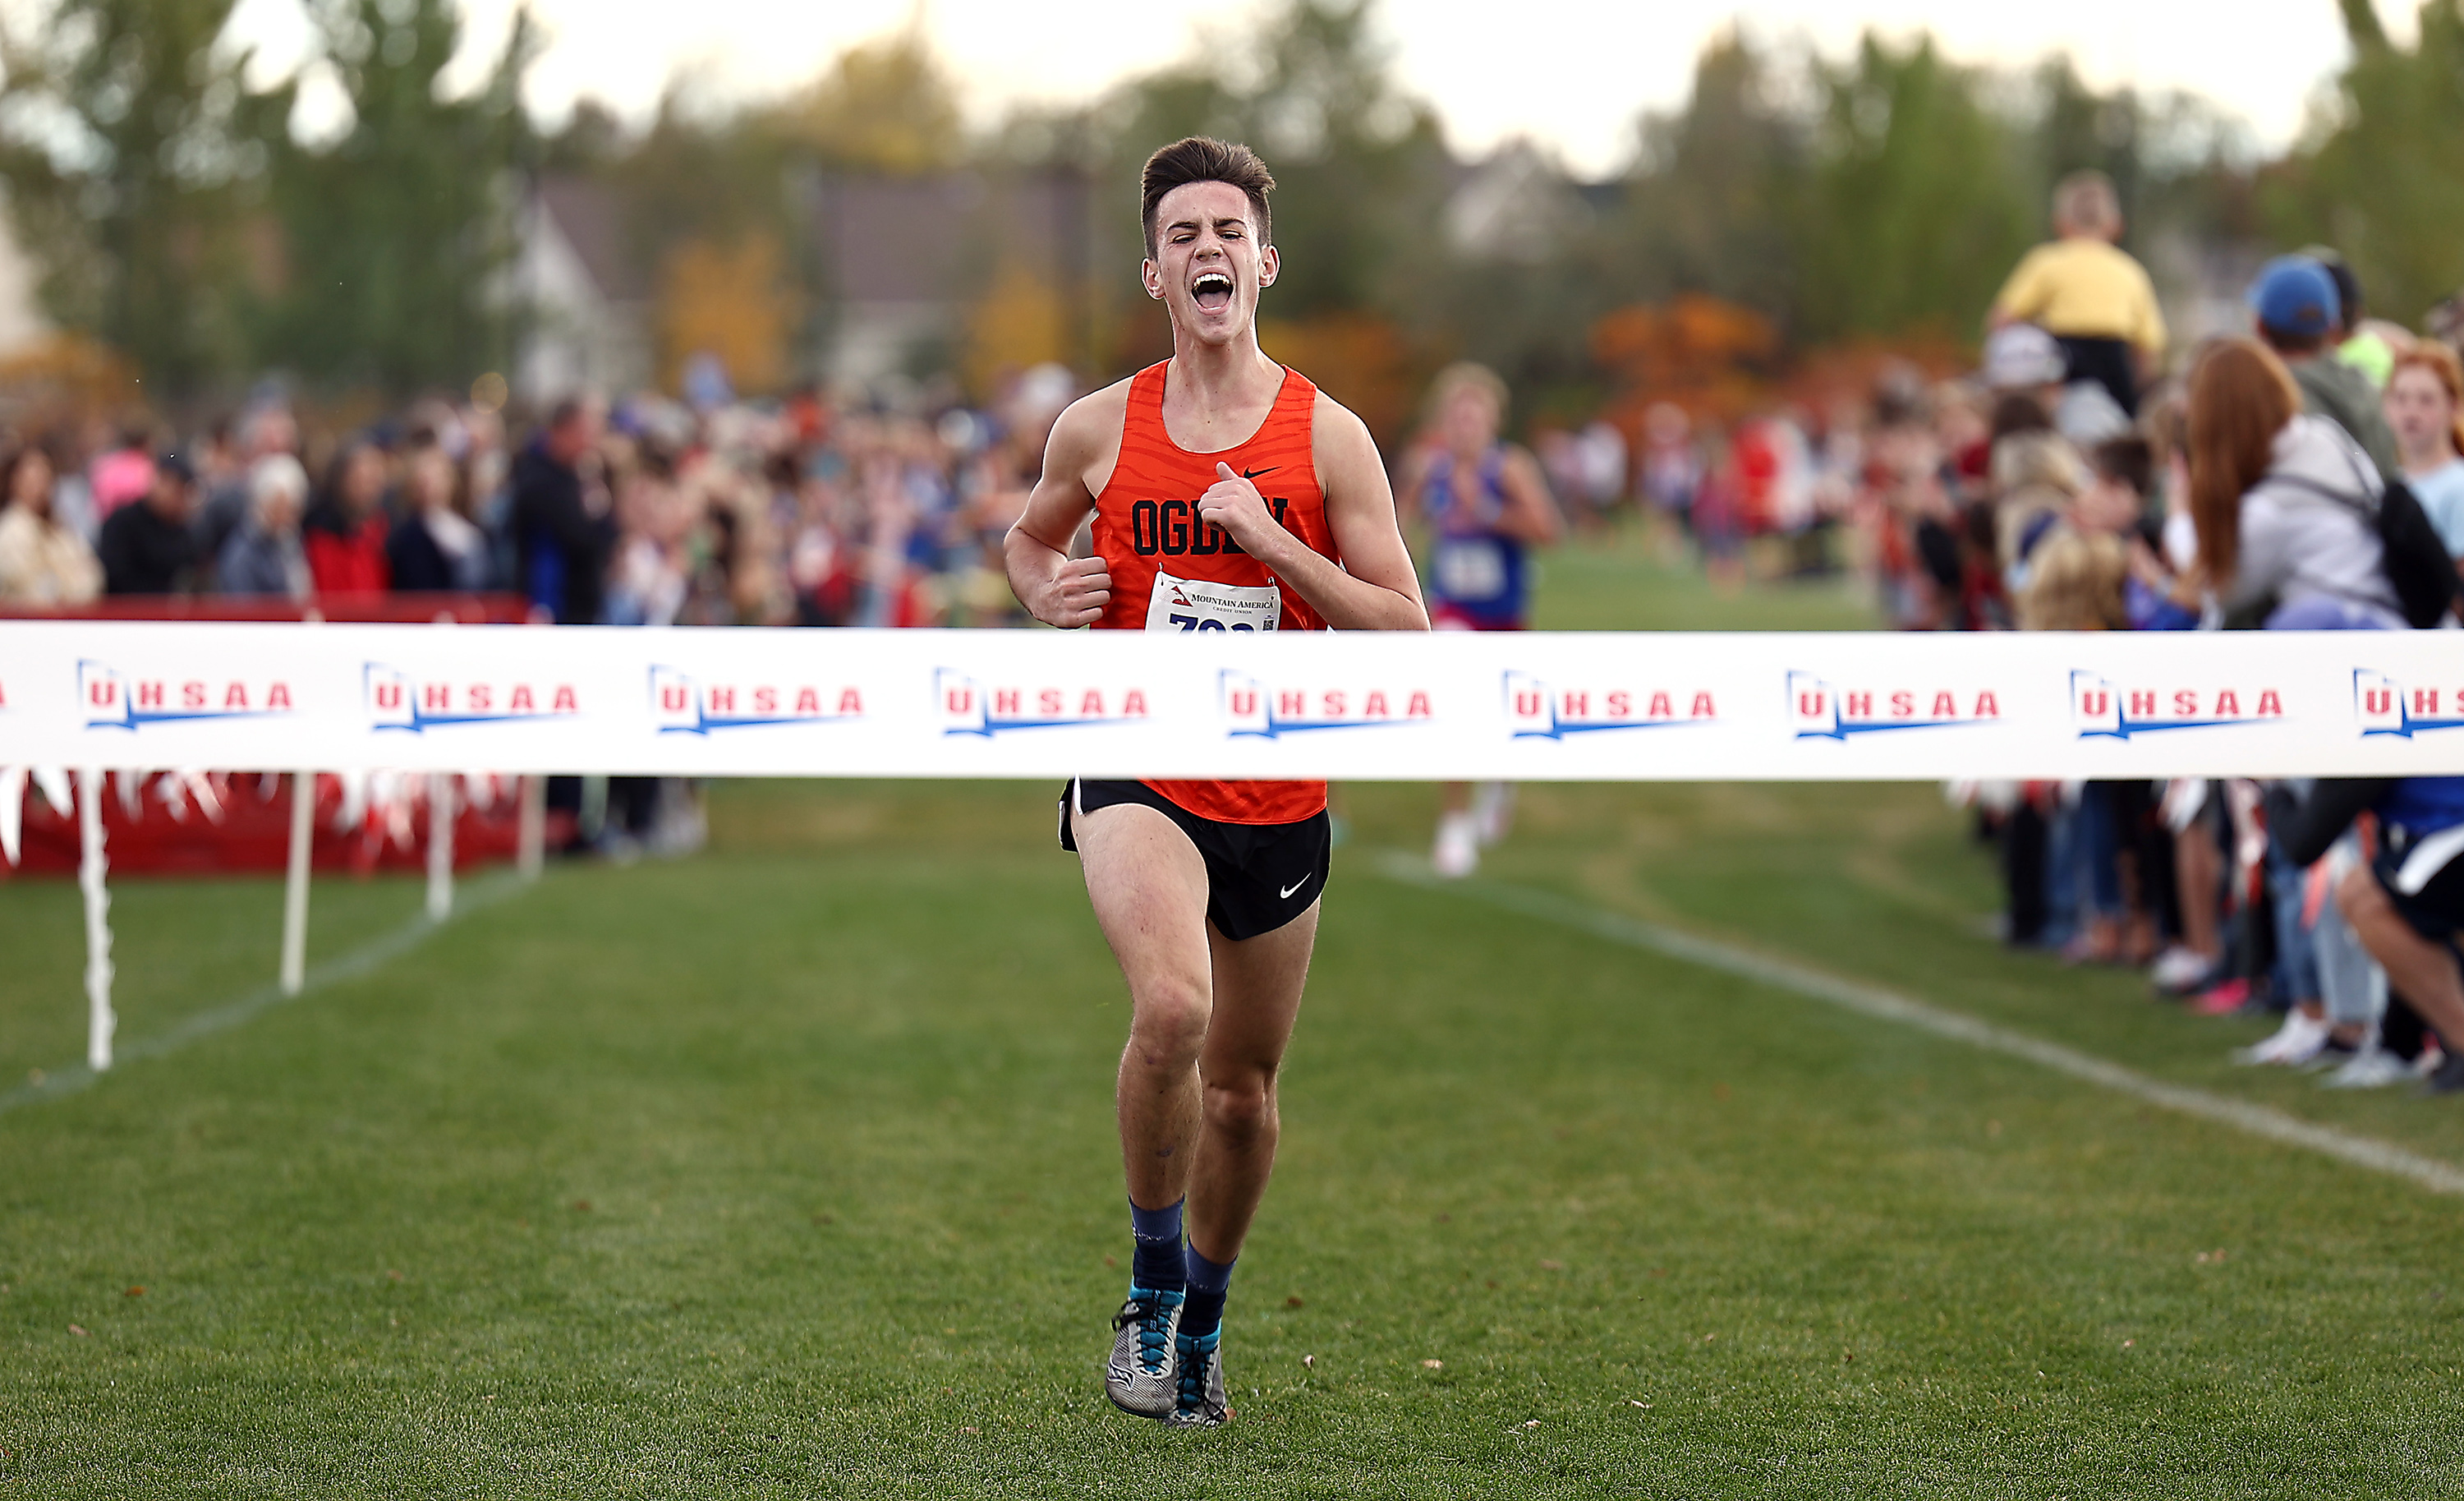 Ogden's Jack Blodgett, begins his celebration as he nears the tape as runners compete in the cross country state championships at the Regional Athletic Complex in Salt Lake City on Wednesday, Oct. 27, 2021.